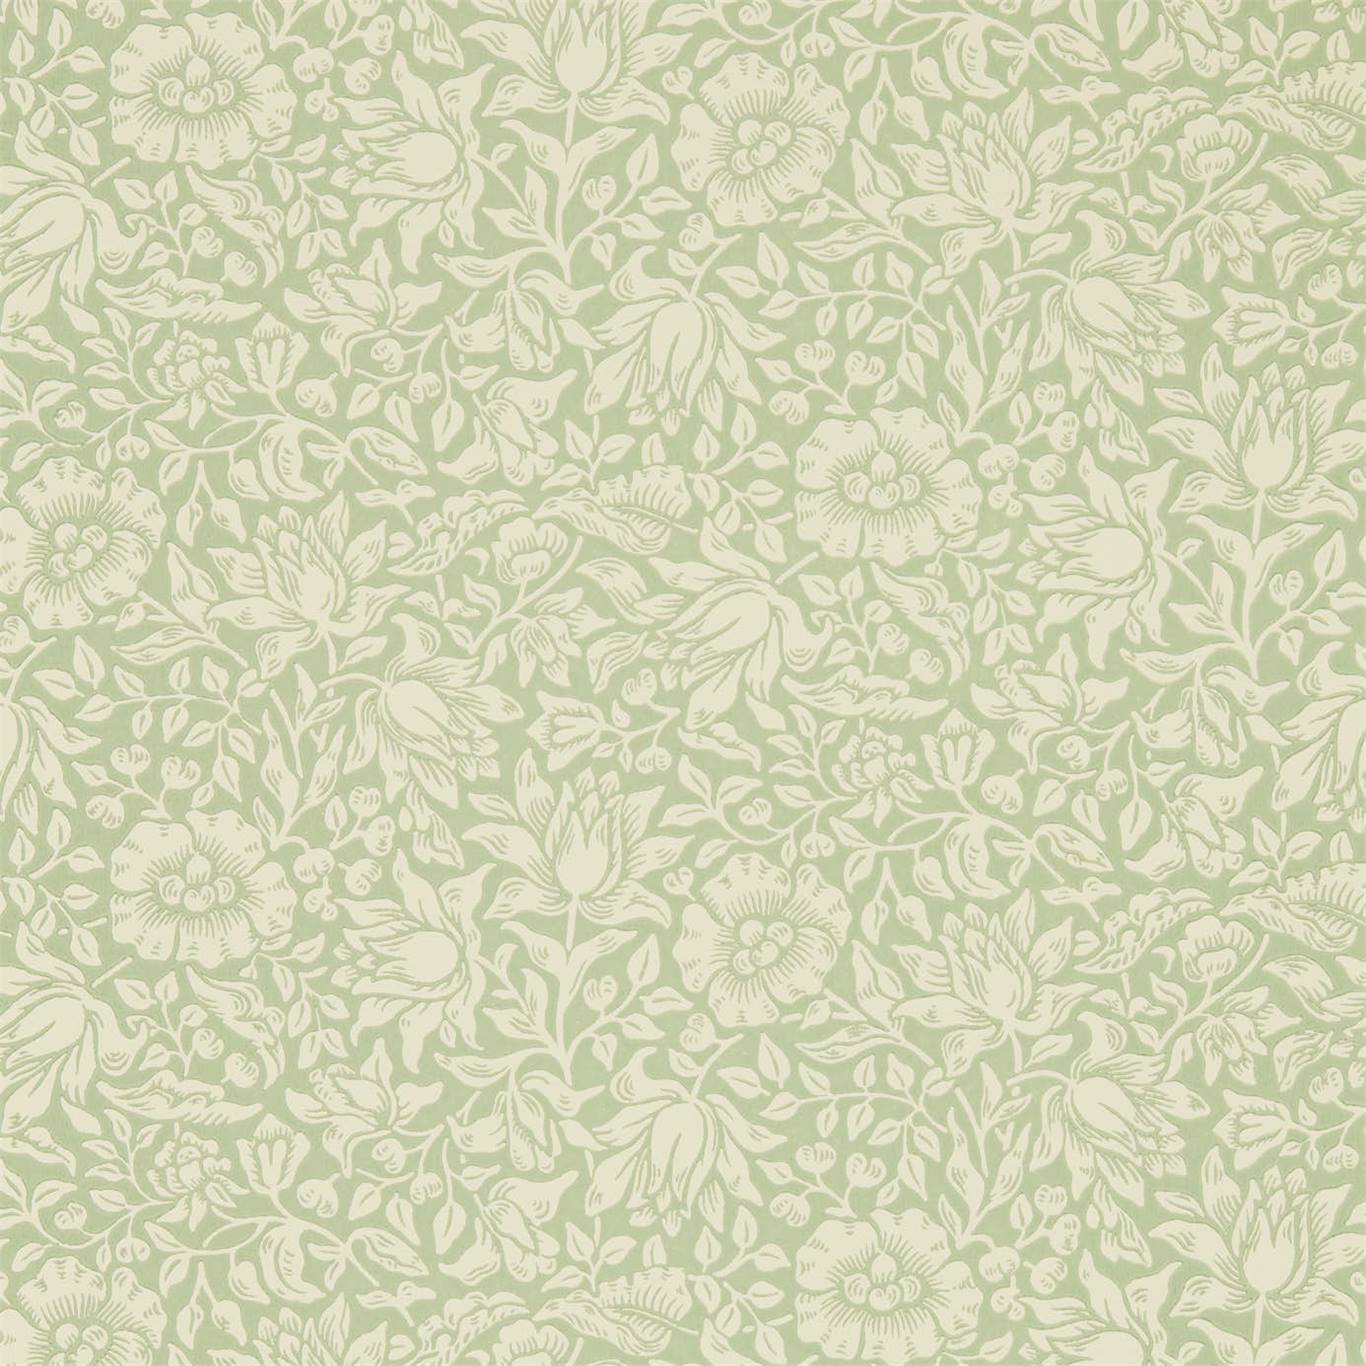 DMSW216678 Collection - Melsetter Wallpapers